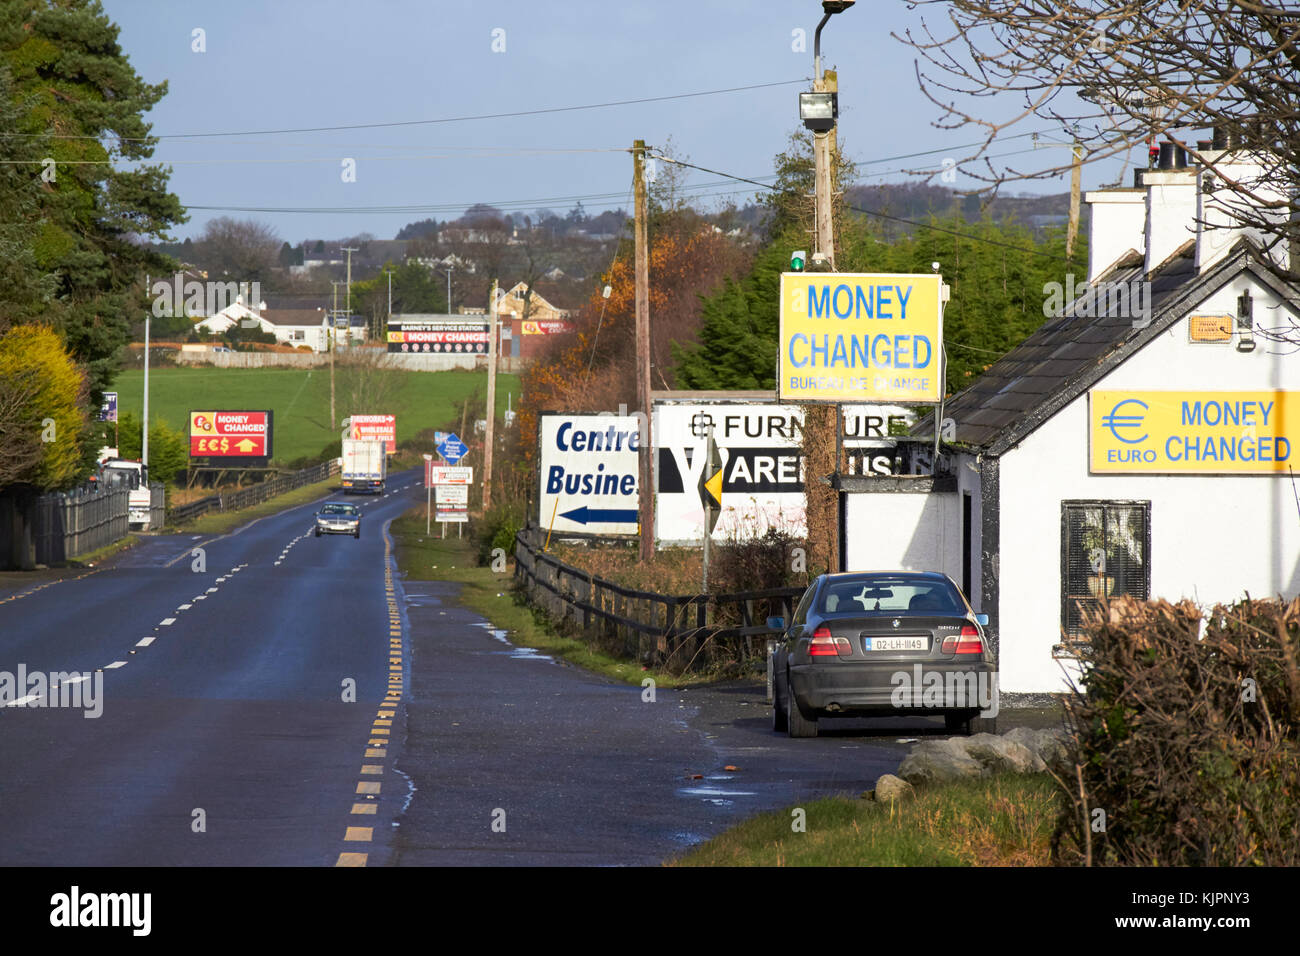 northern ireland border sign stock photos northern ireland border sign stock images alamy. Black Bedroom Furniture Sets. Home Design Ideas